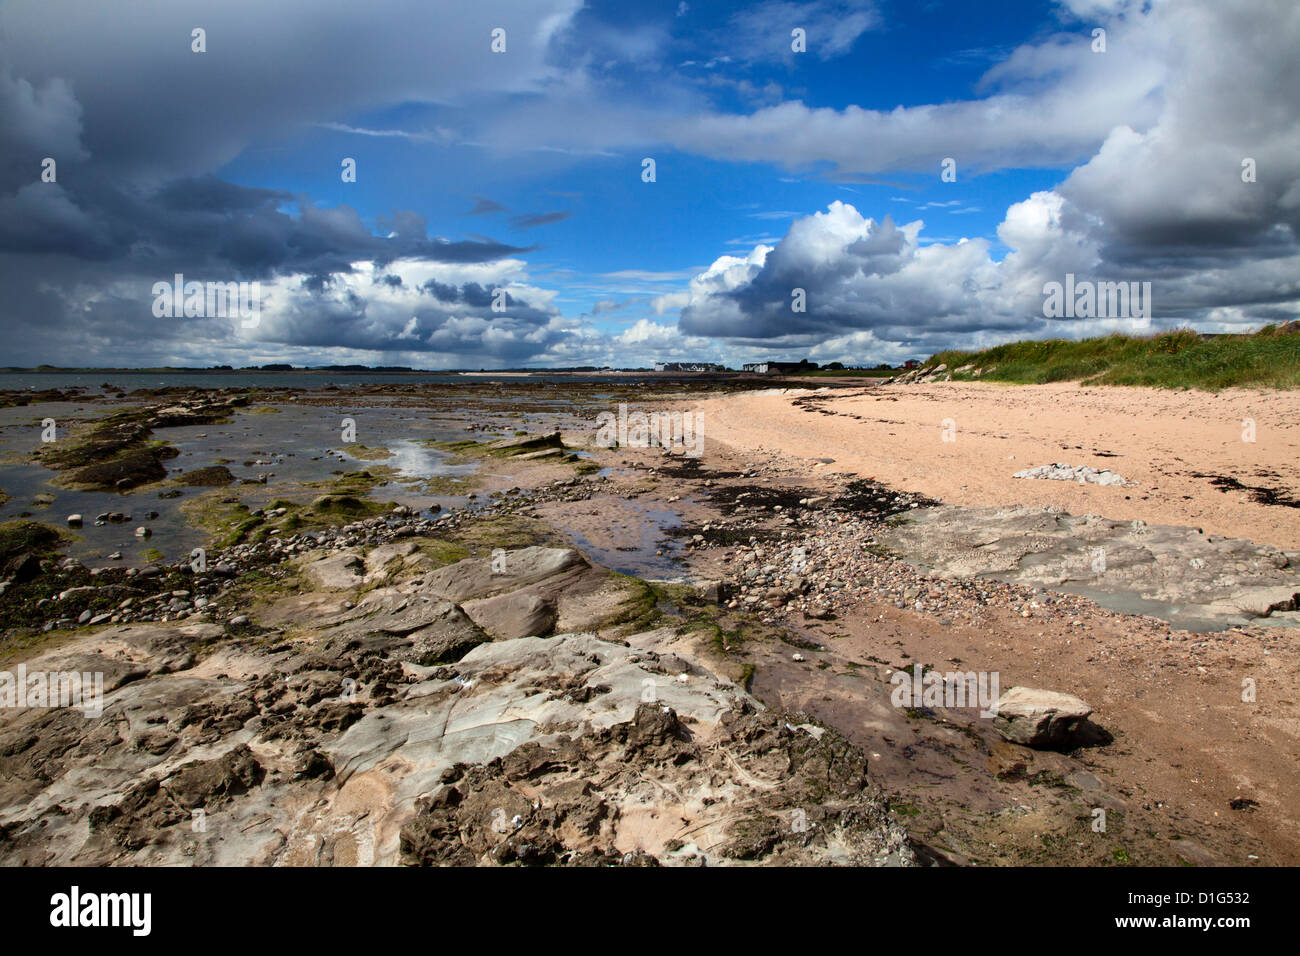 Rocks on the beach at Carnoustie, Angus, Scotland, United Kingdom, Europe - Stock Image